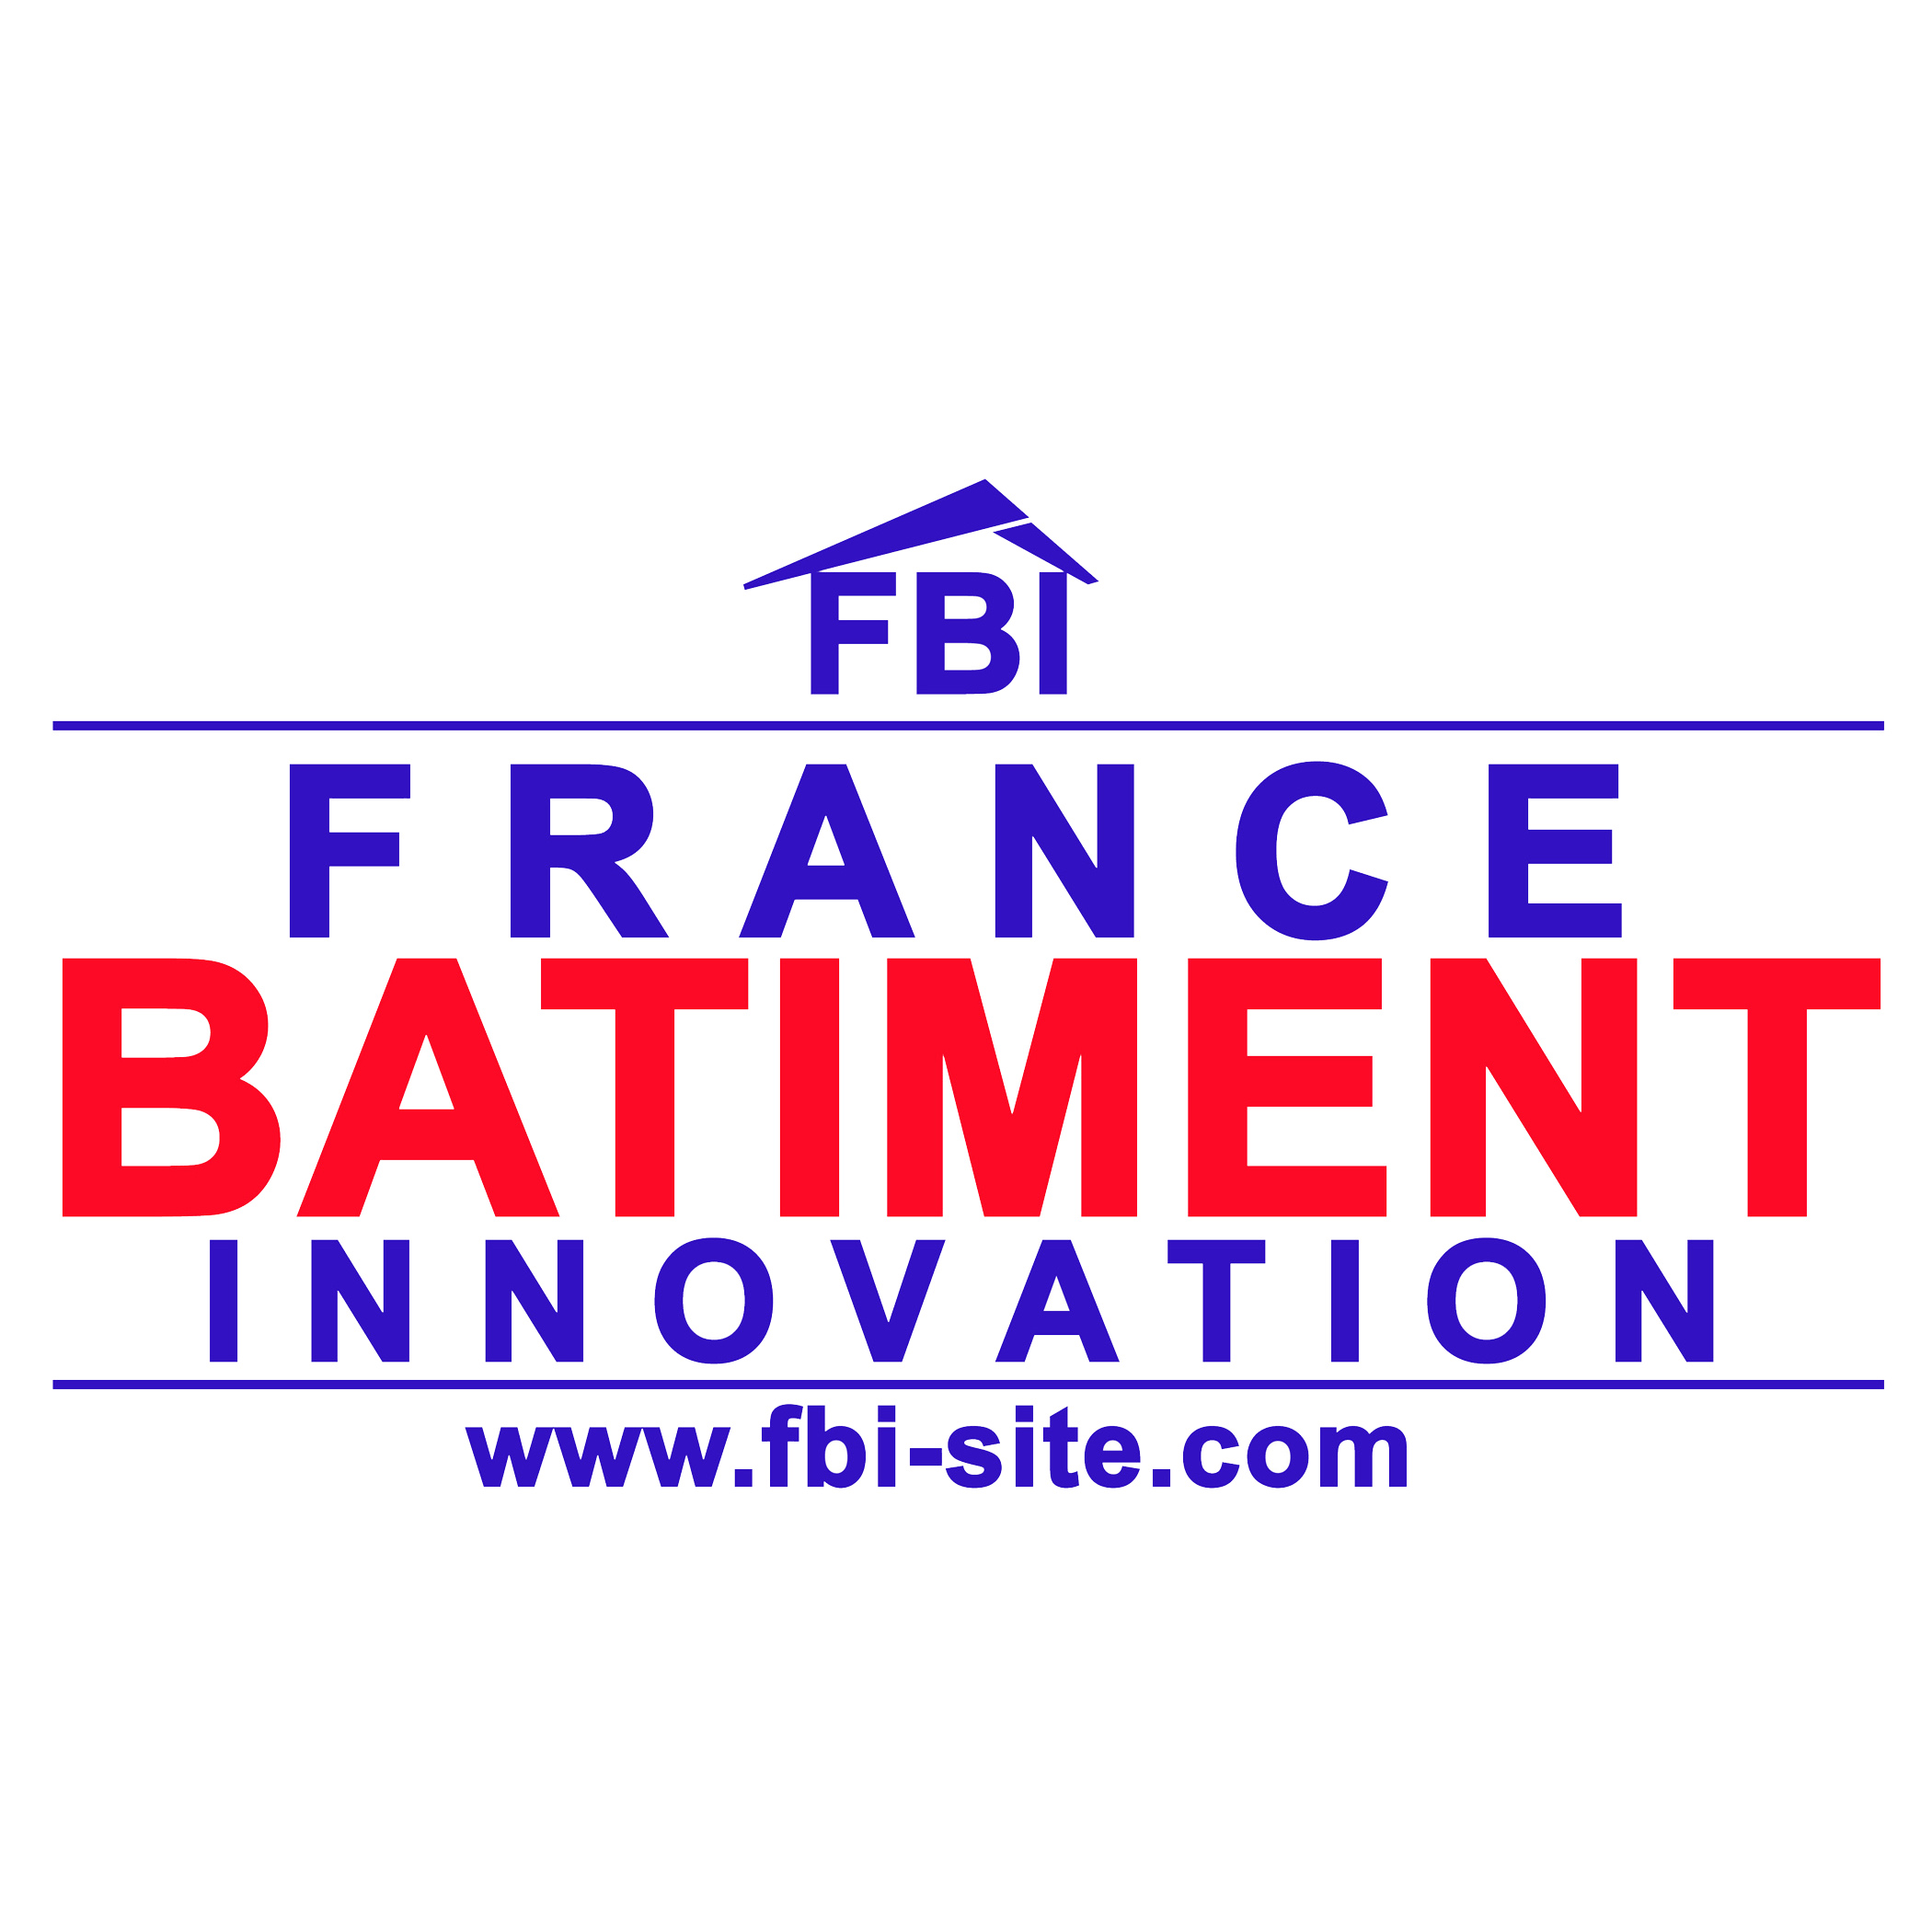 FRANCE BÂTIMENT INNOVATION